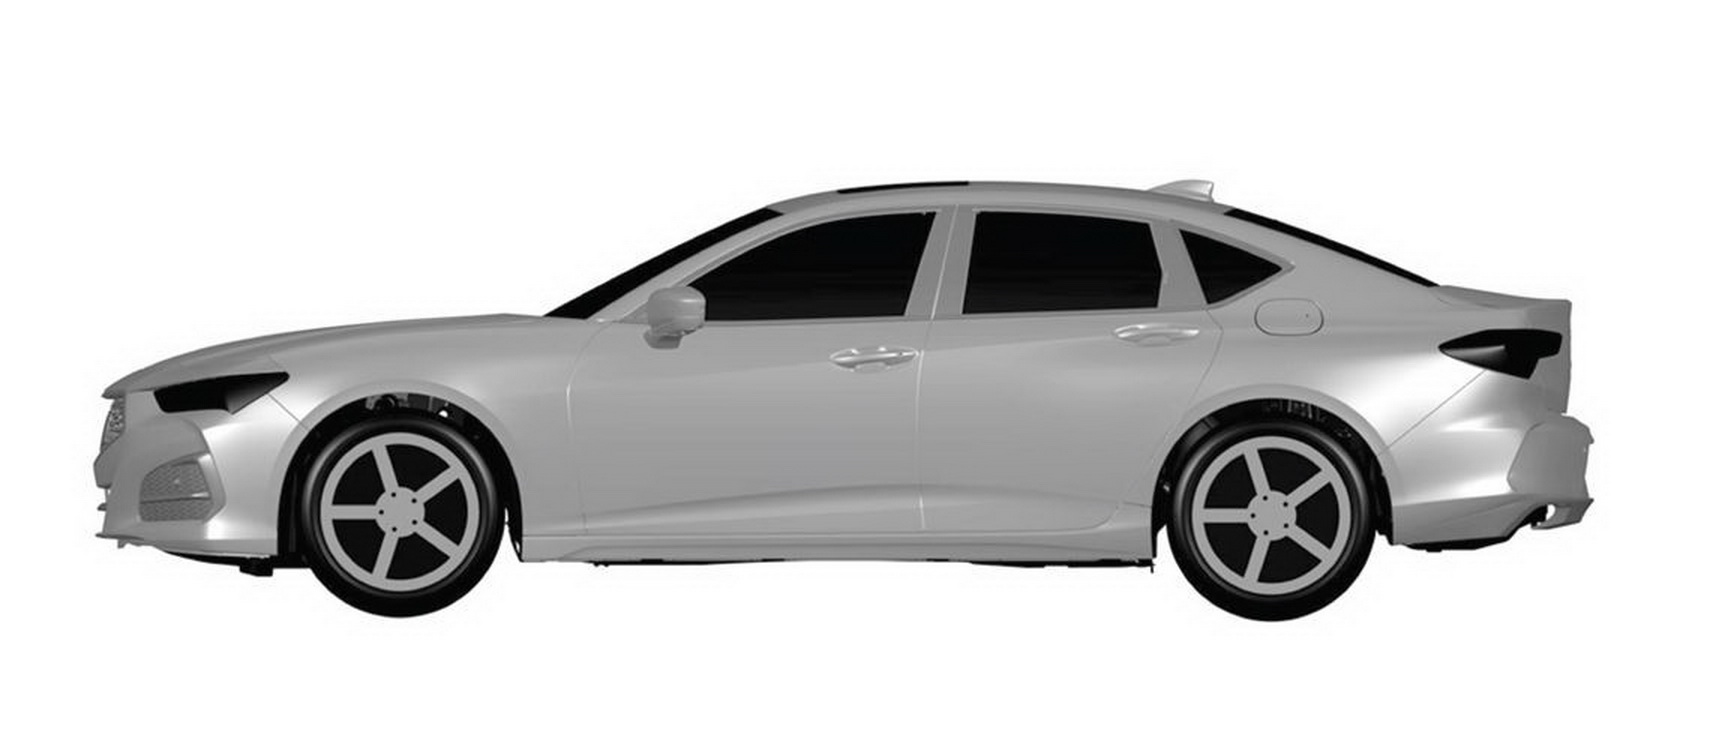 2021_Acura_TLX_patent_images_0005